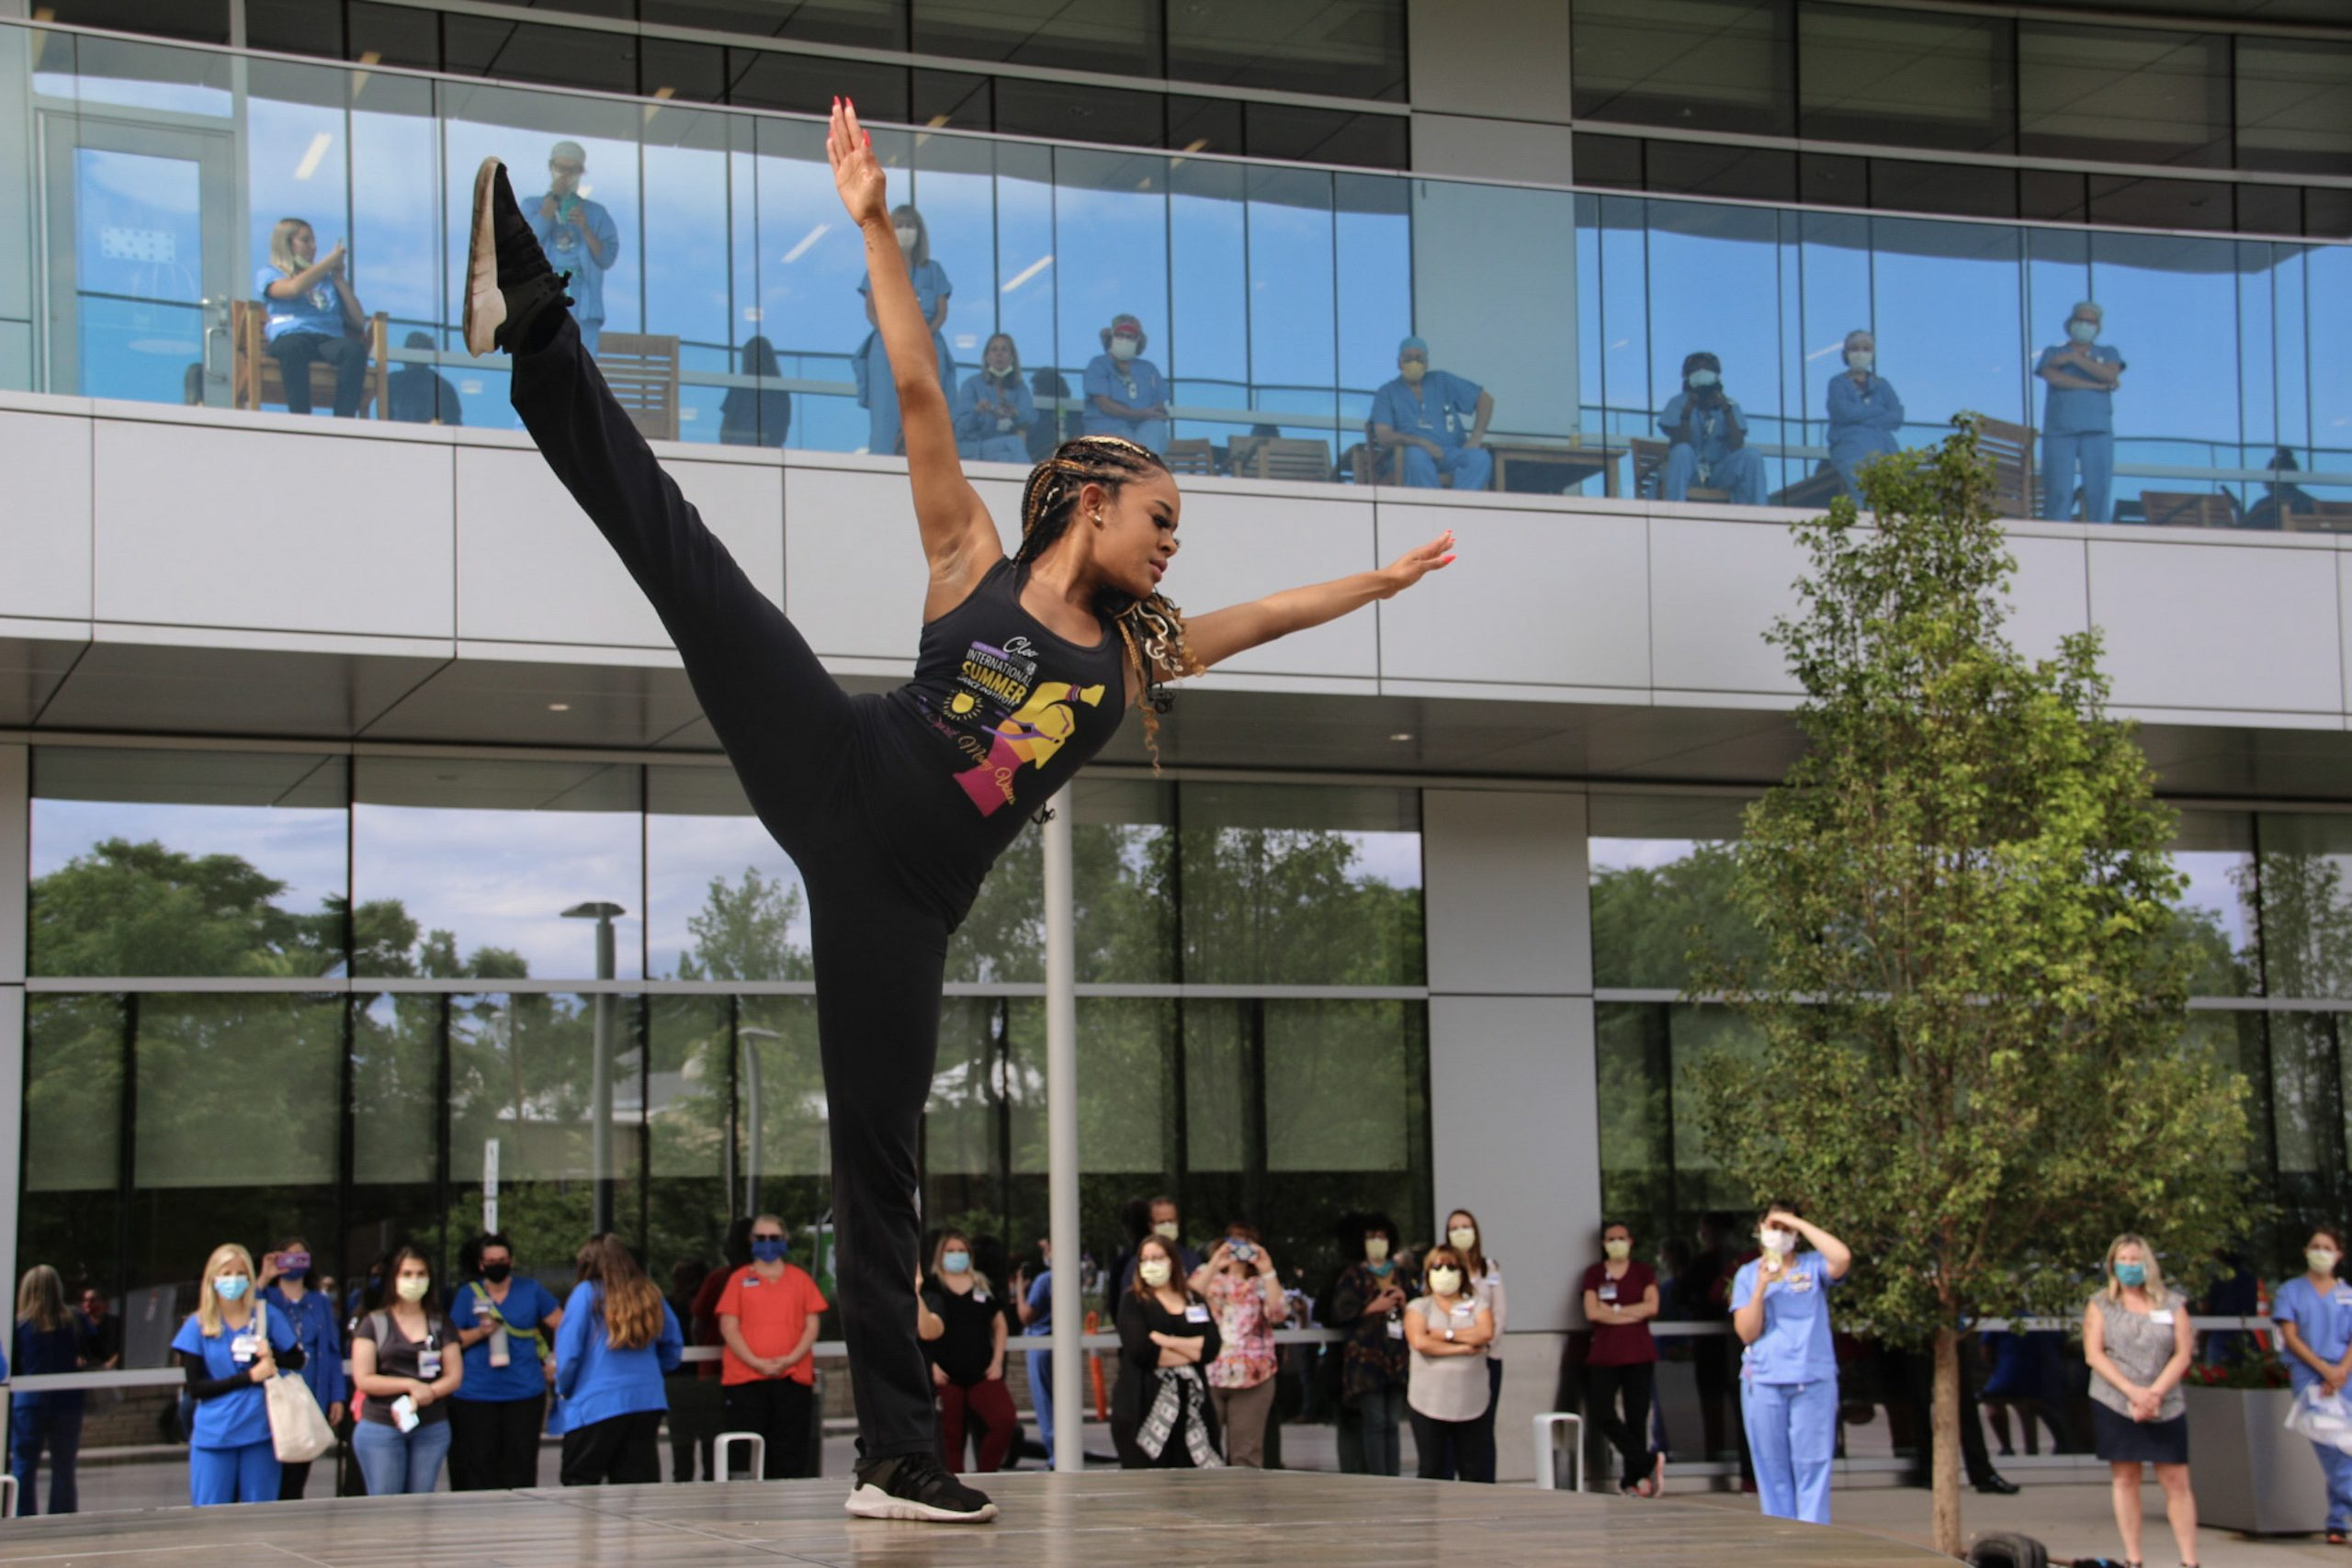 Cleo Parker Robinson Dance Celebrate 50 Years of Bringing Communities Together Through Dance